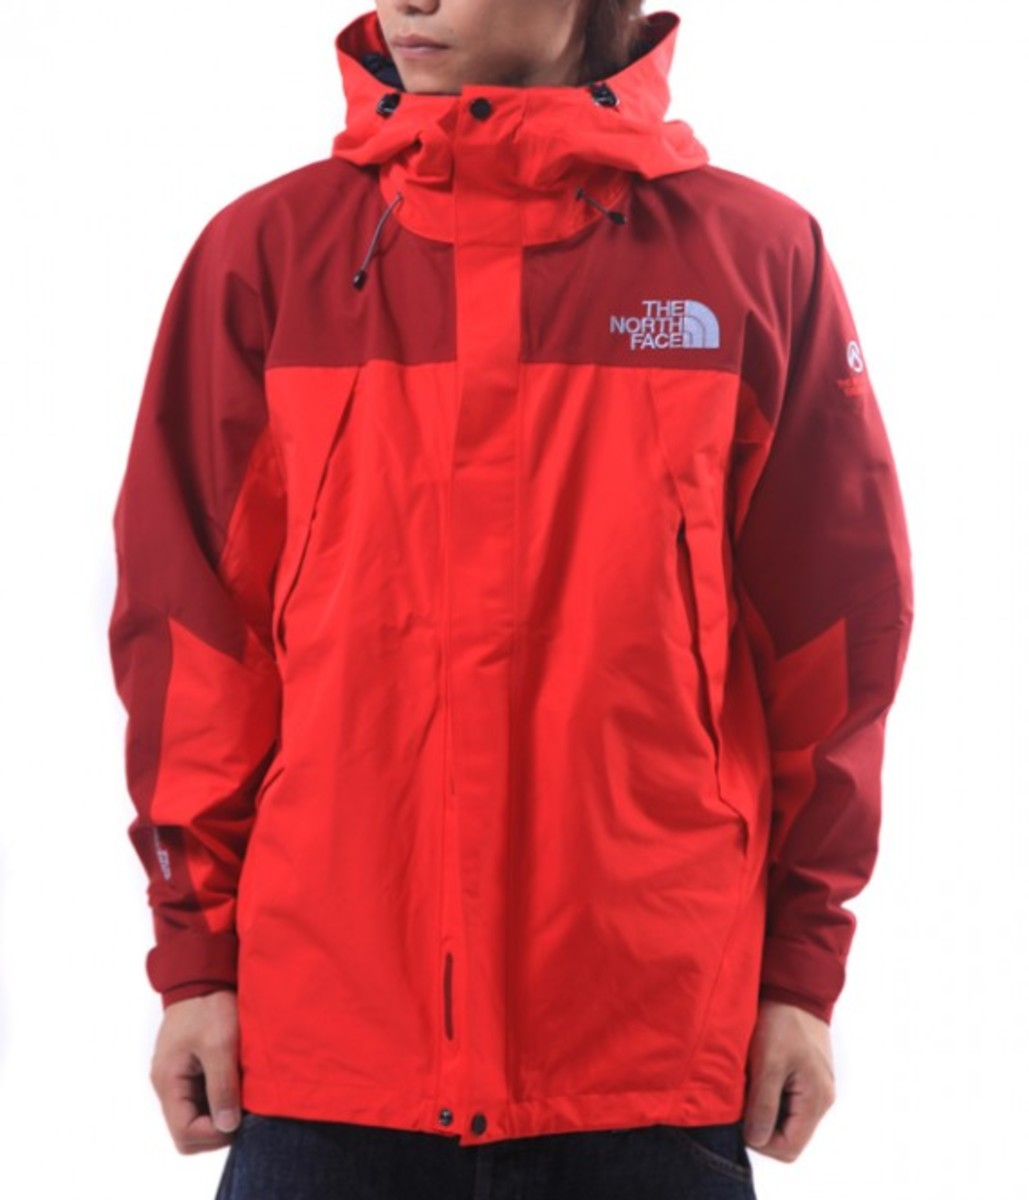 Mountain Jacket Red